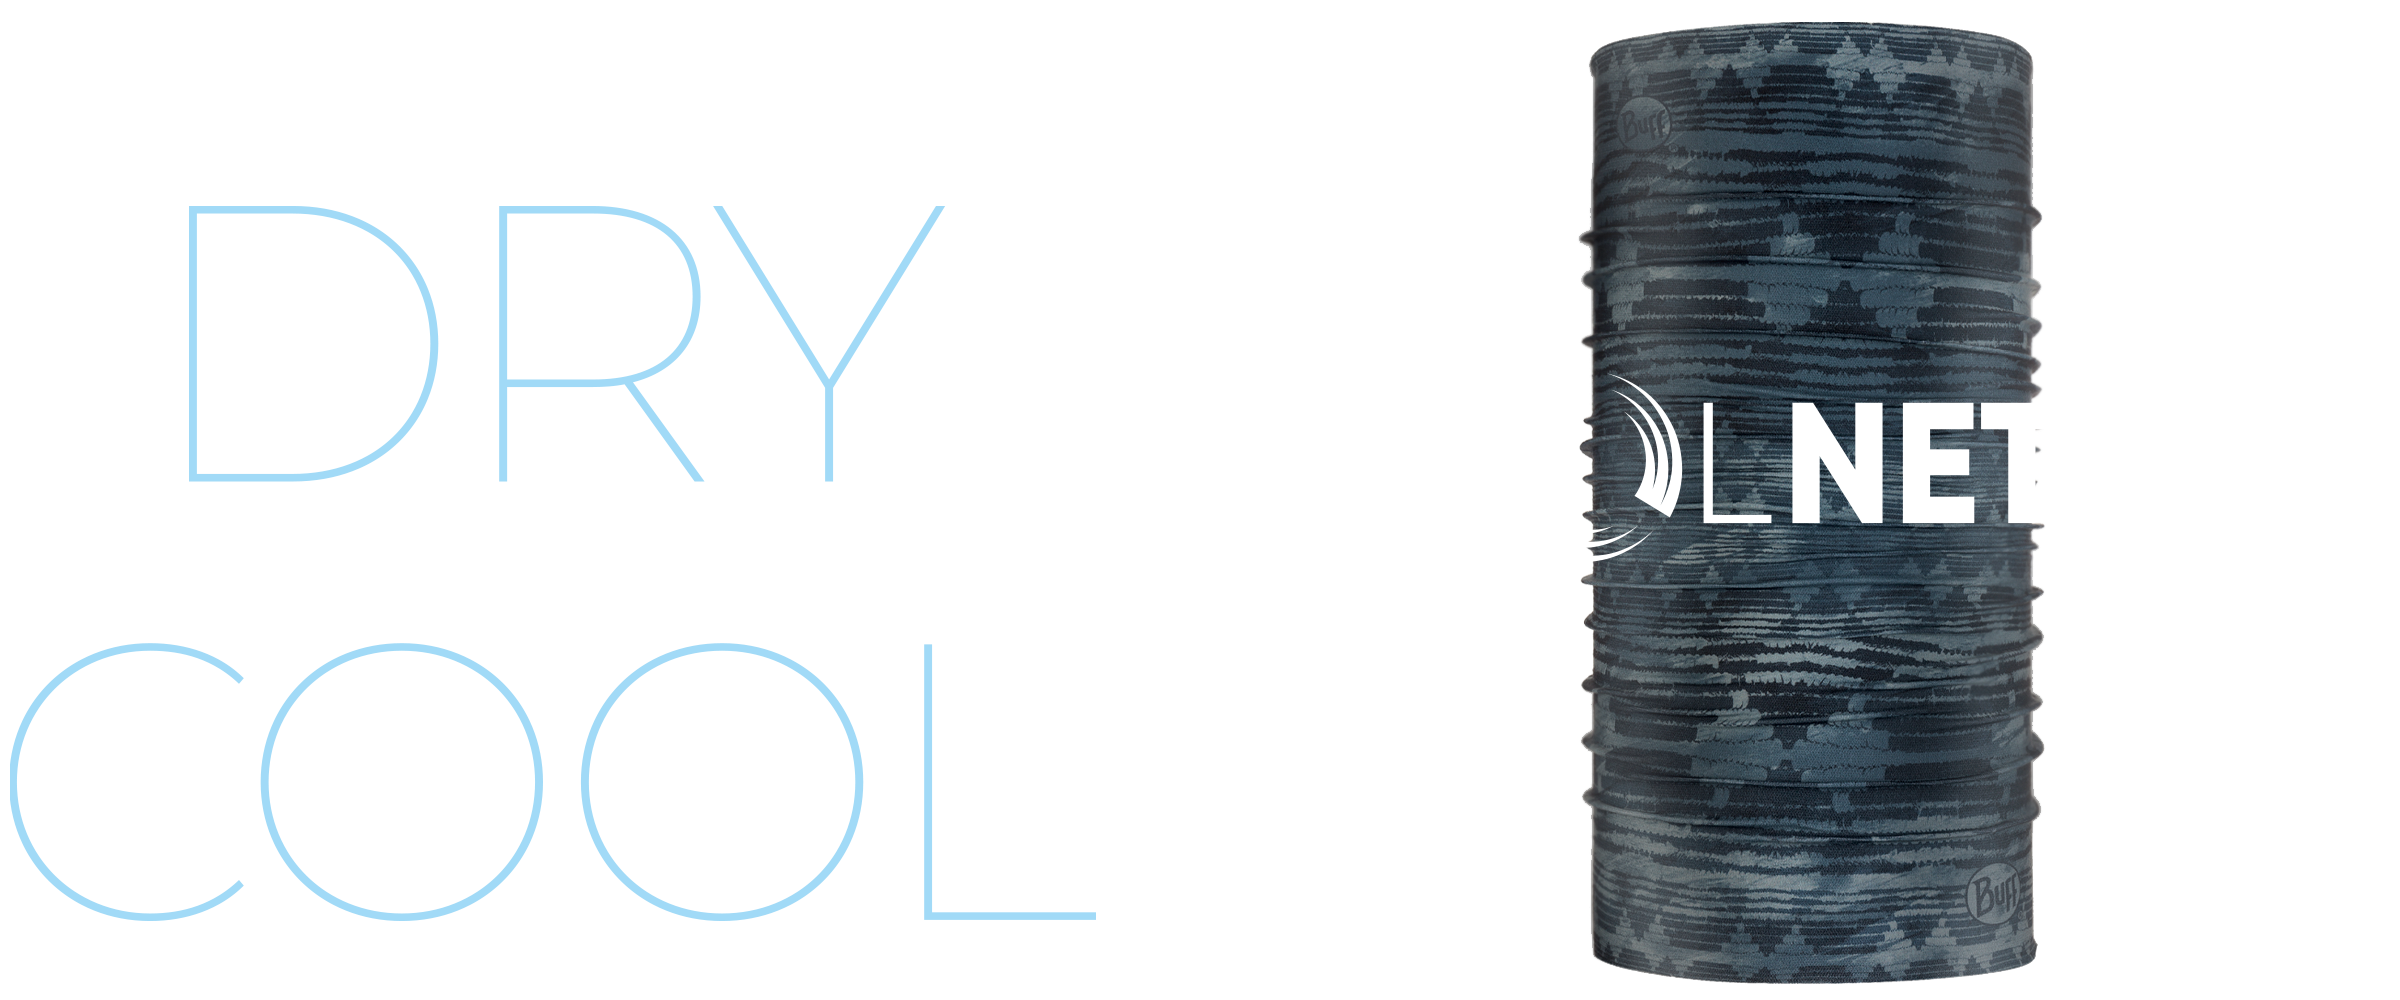 stay dry feel cool with coolnet uv+